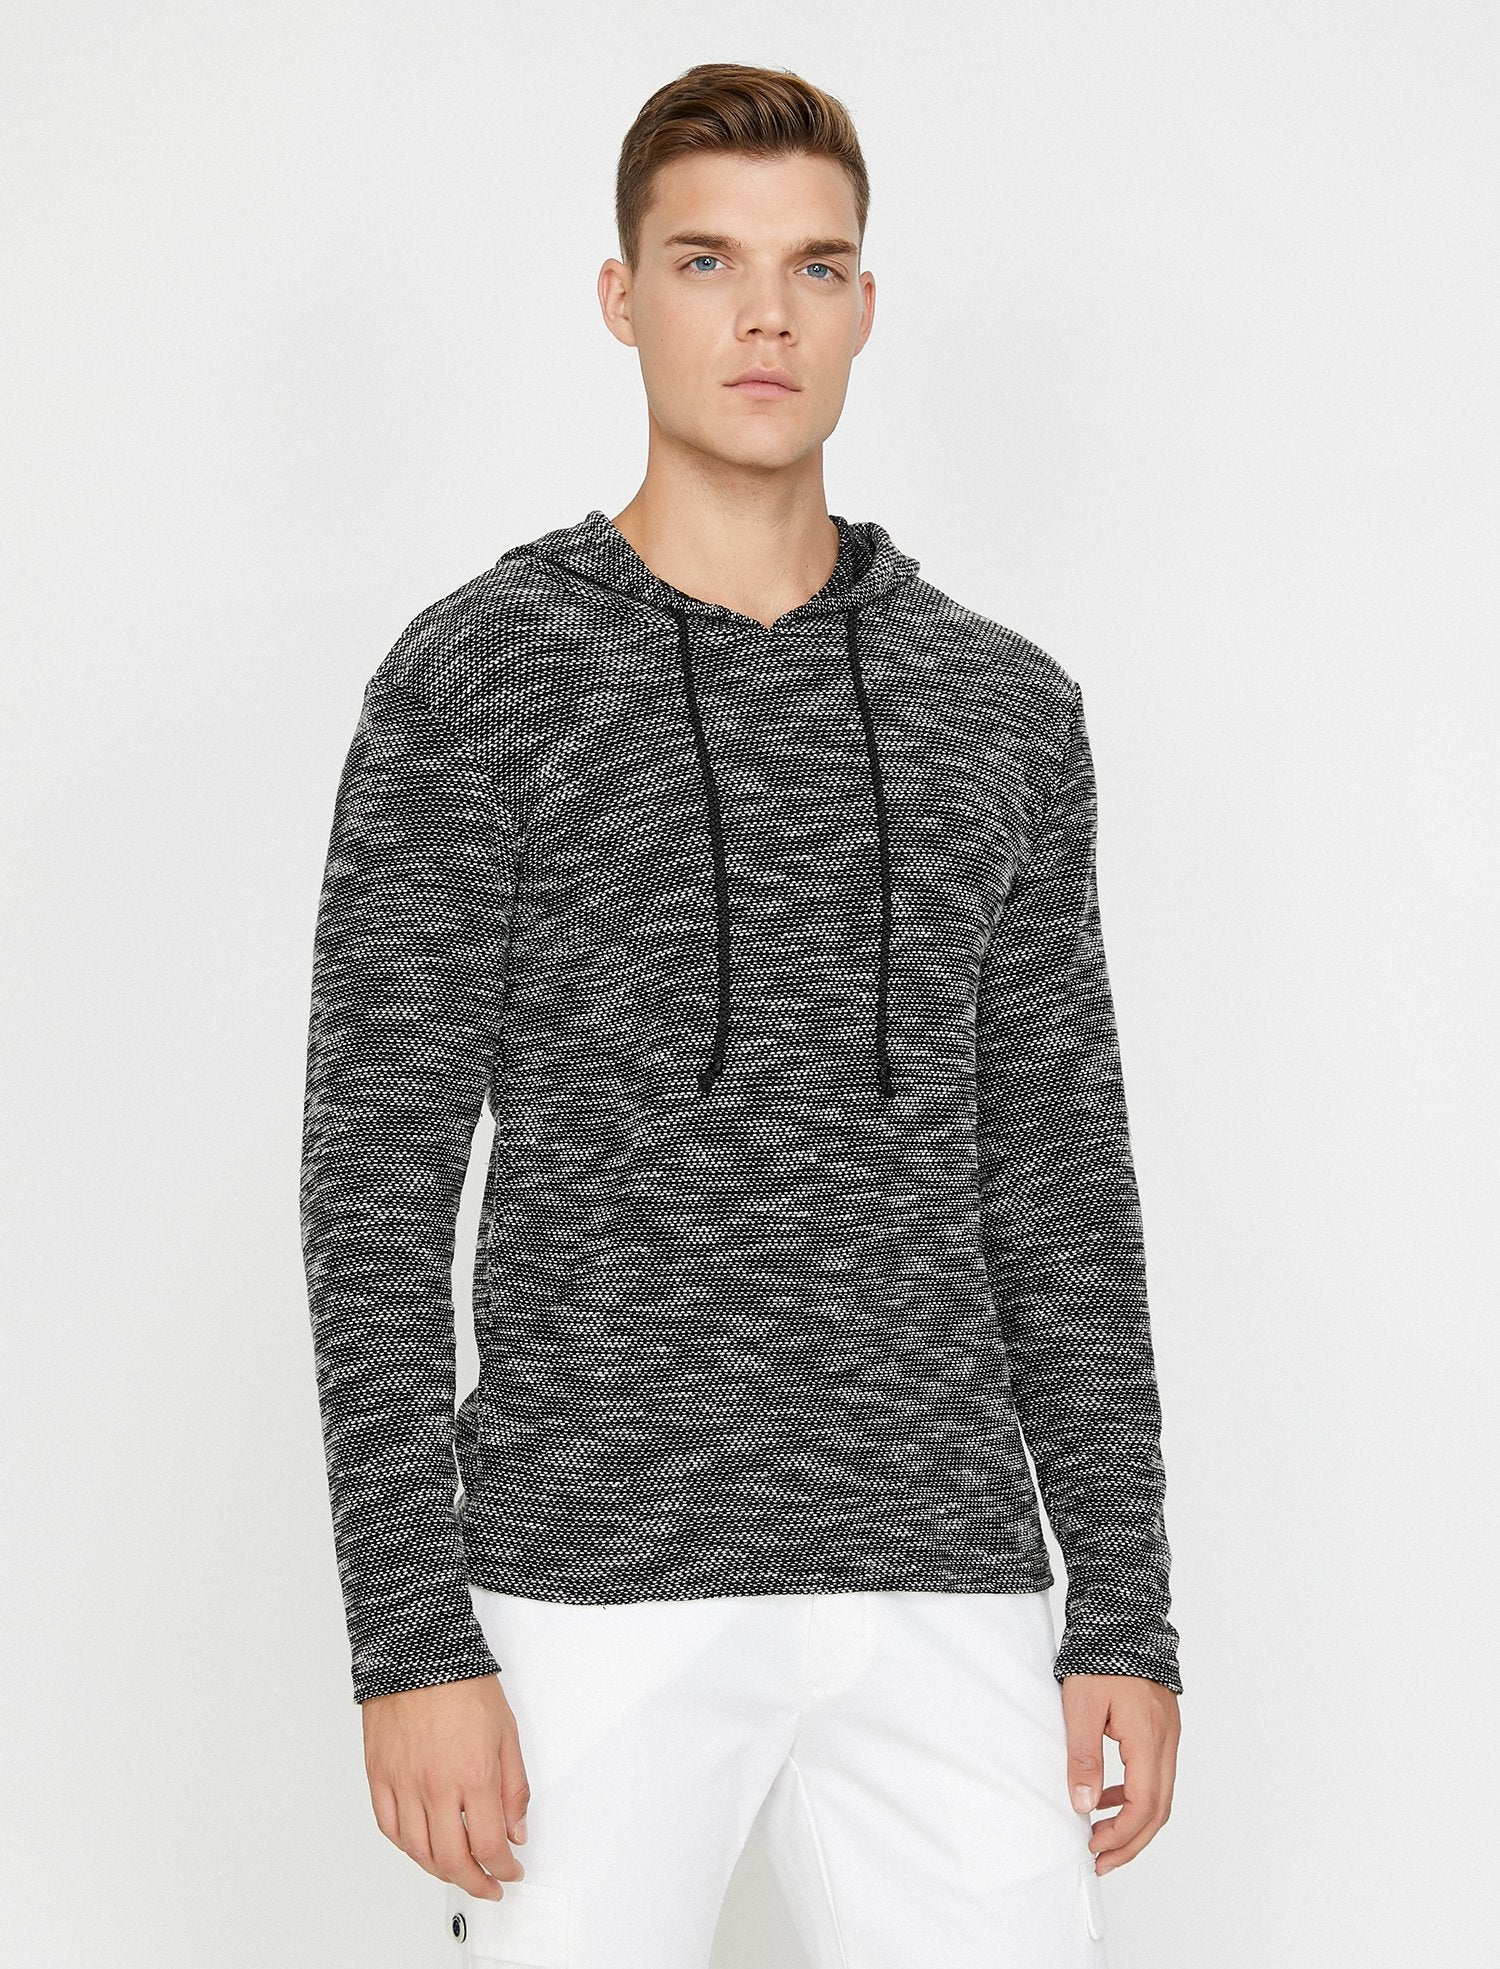 Textured Jumper with Hood in Black